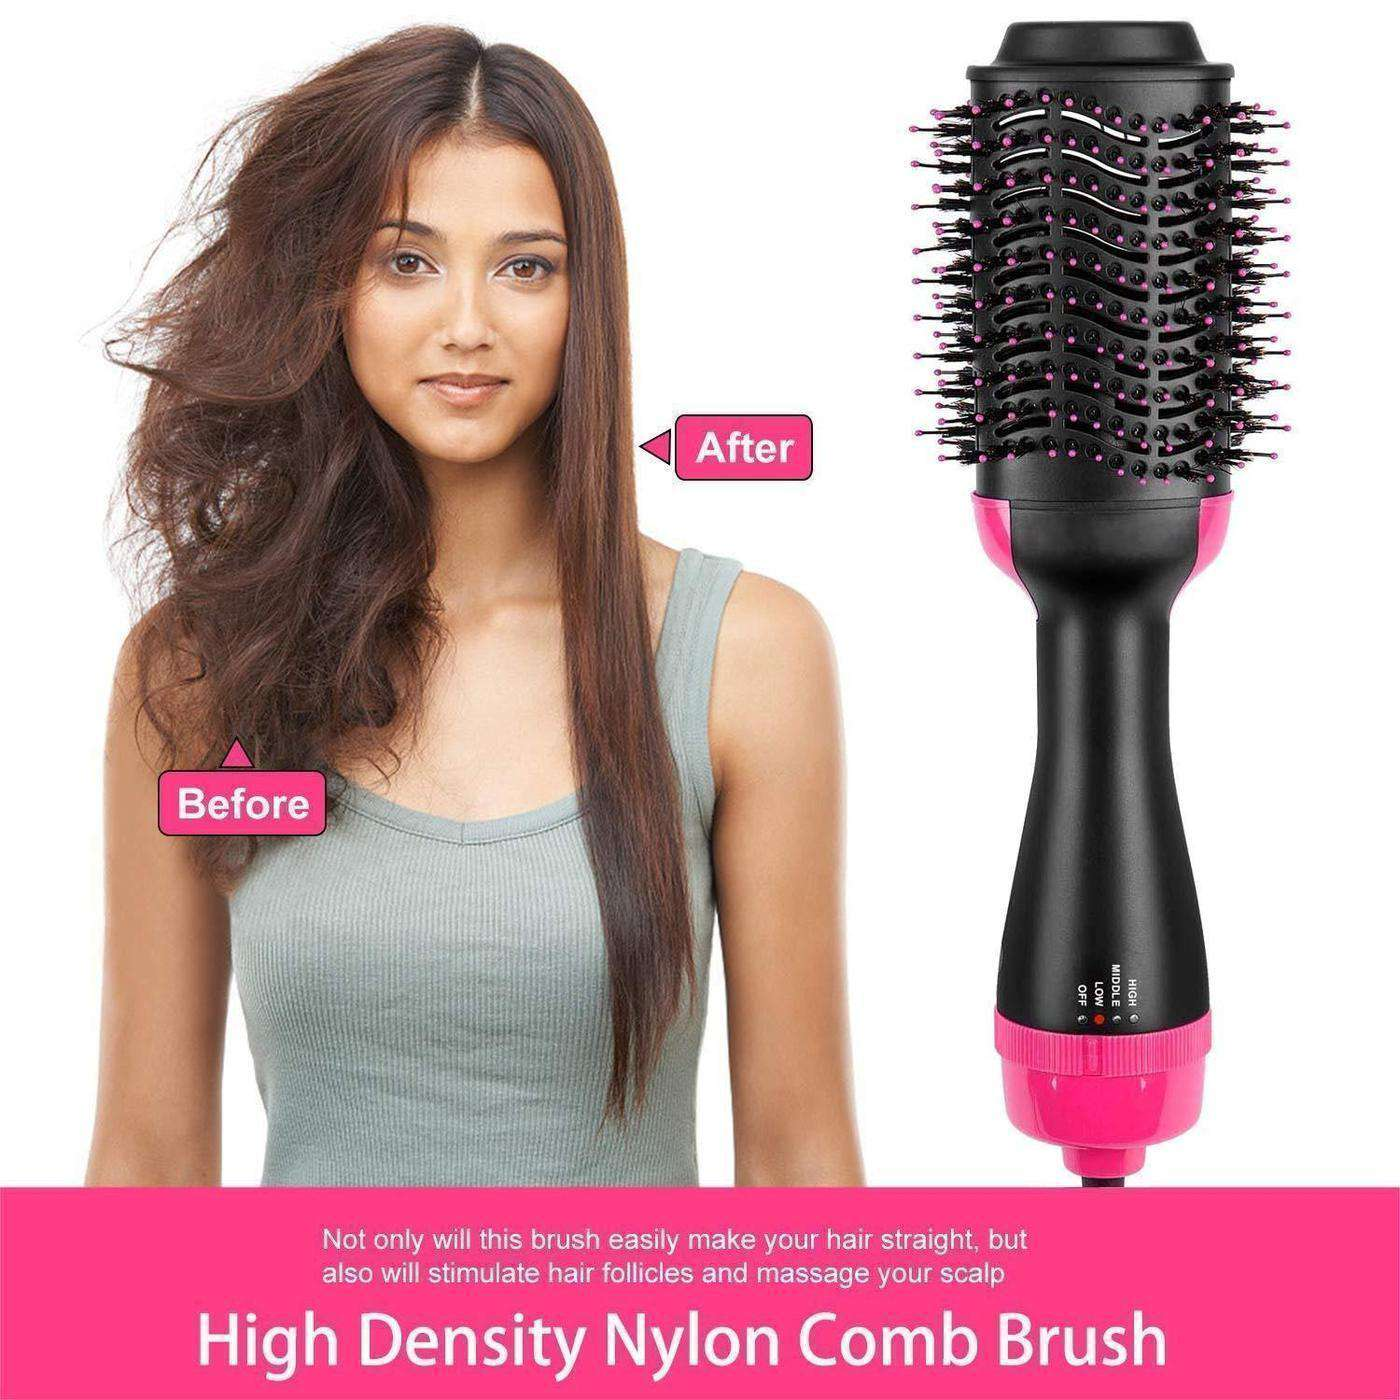 Blowout Brush DBB - (3 in 1 Volumizer & Dryer & Styler) - Discounts You May Like